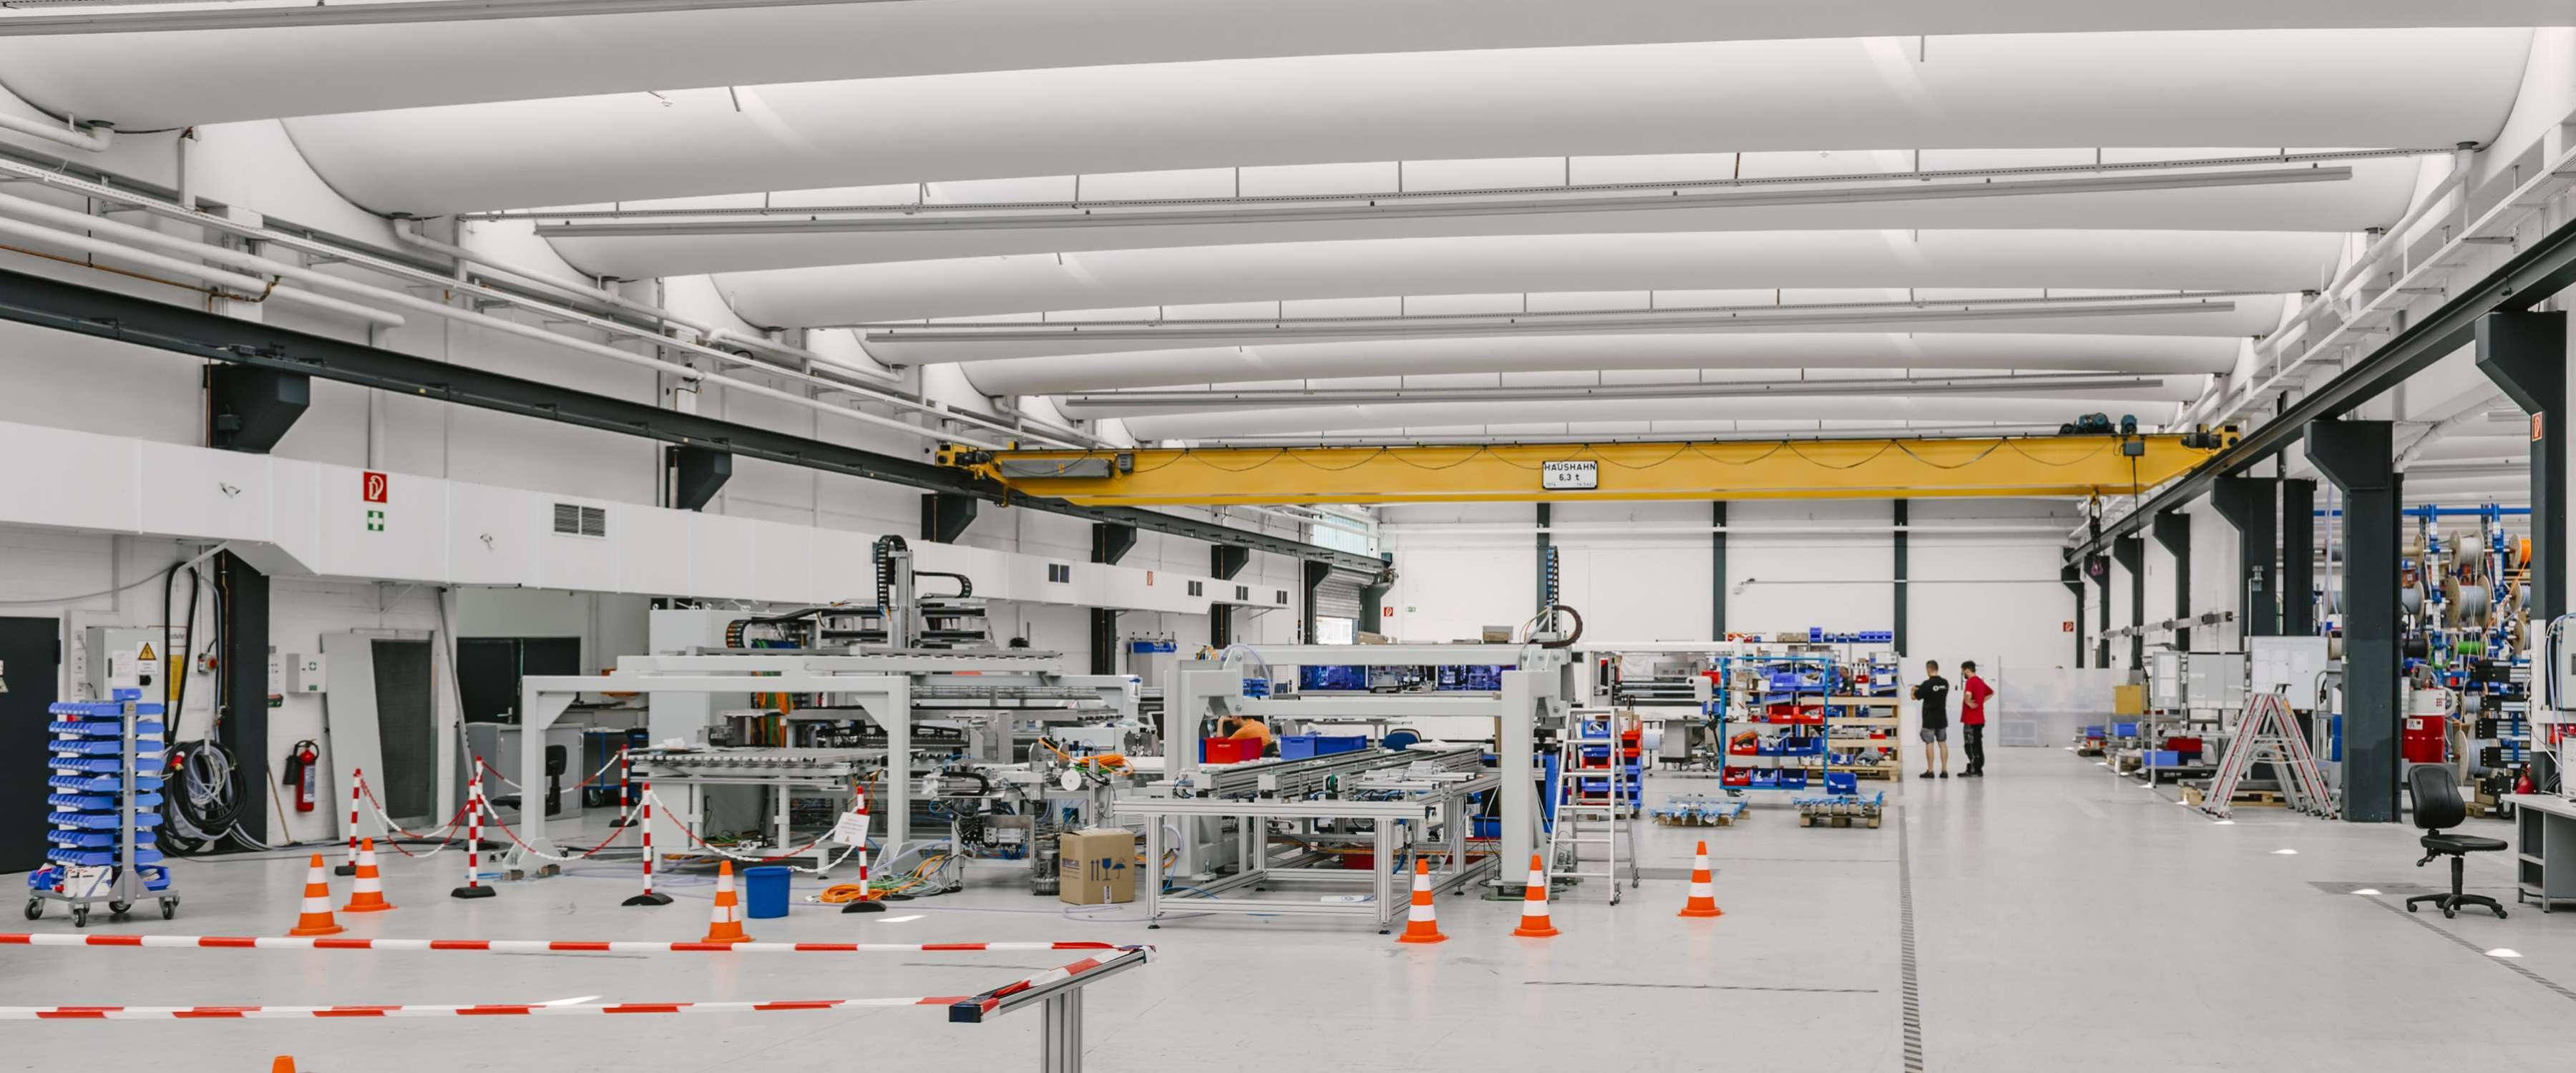 Somont AG | Umkirch • 57 rung glazings (length 20 m x height 1.10 m), 72 ventilation flaps for 24 V control technology.